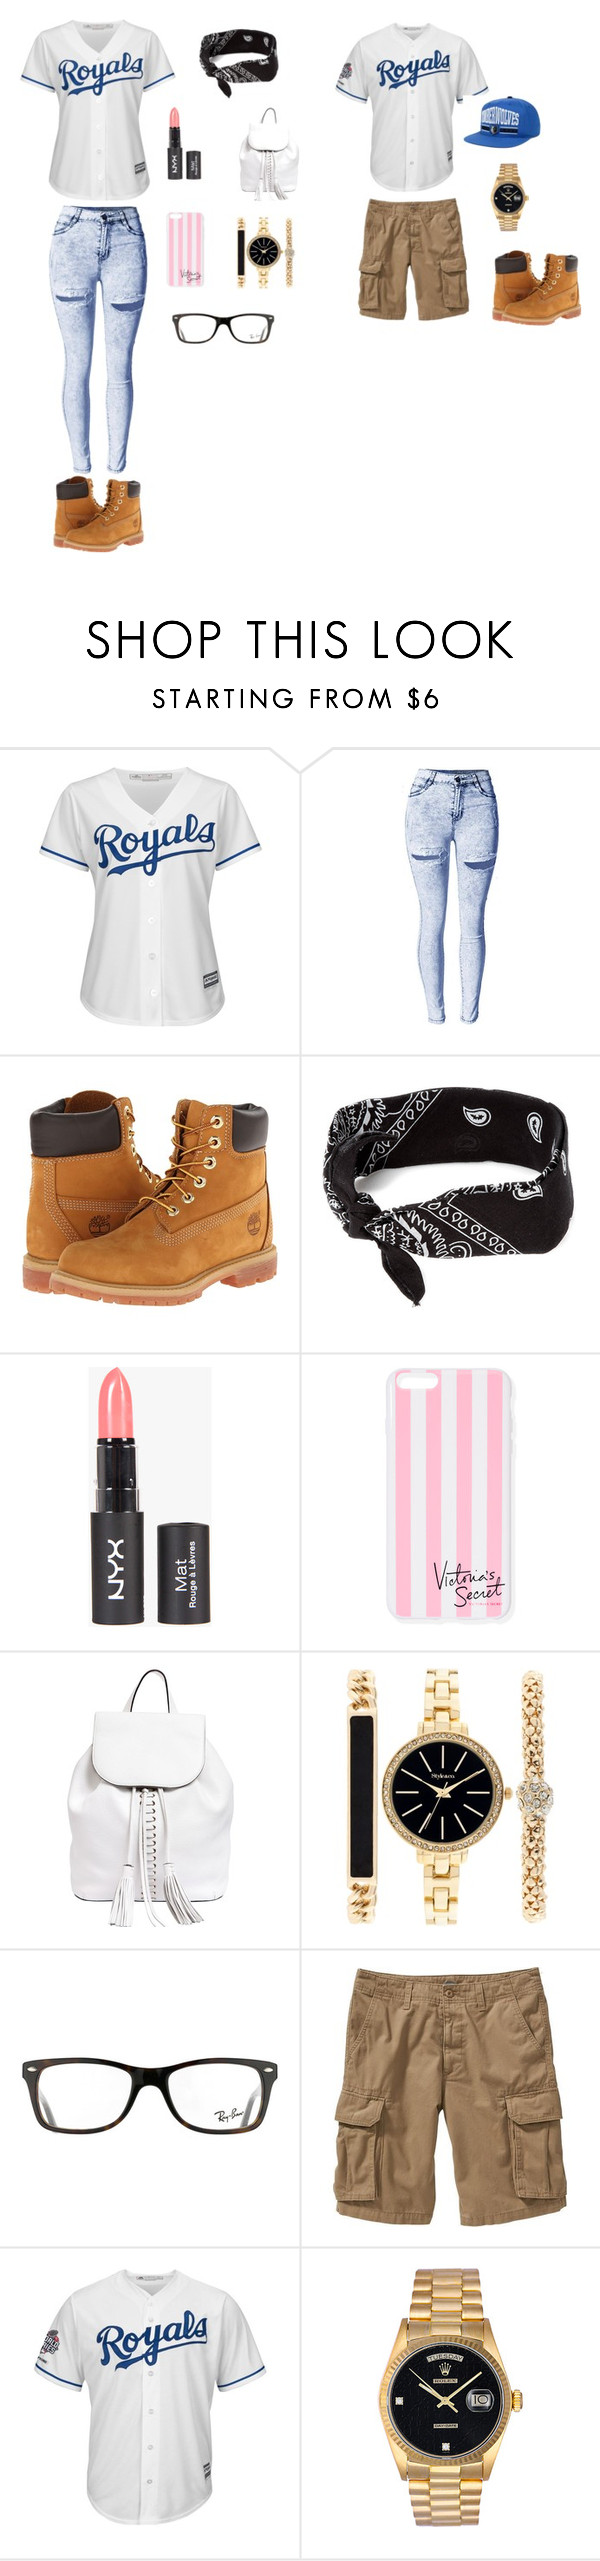 """""""Twins"""" by patshawnj on Polyvore featuring Majestic, Timberland, claire's, Victoria's Secret, Rebecca Minkoff, Style & Co., Ray-Ban, Old Navy, Rolex and Puma"""